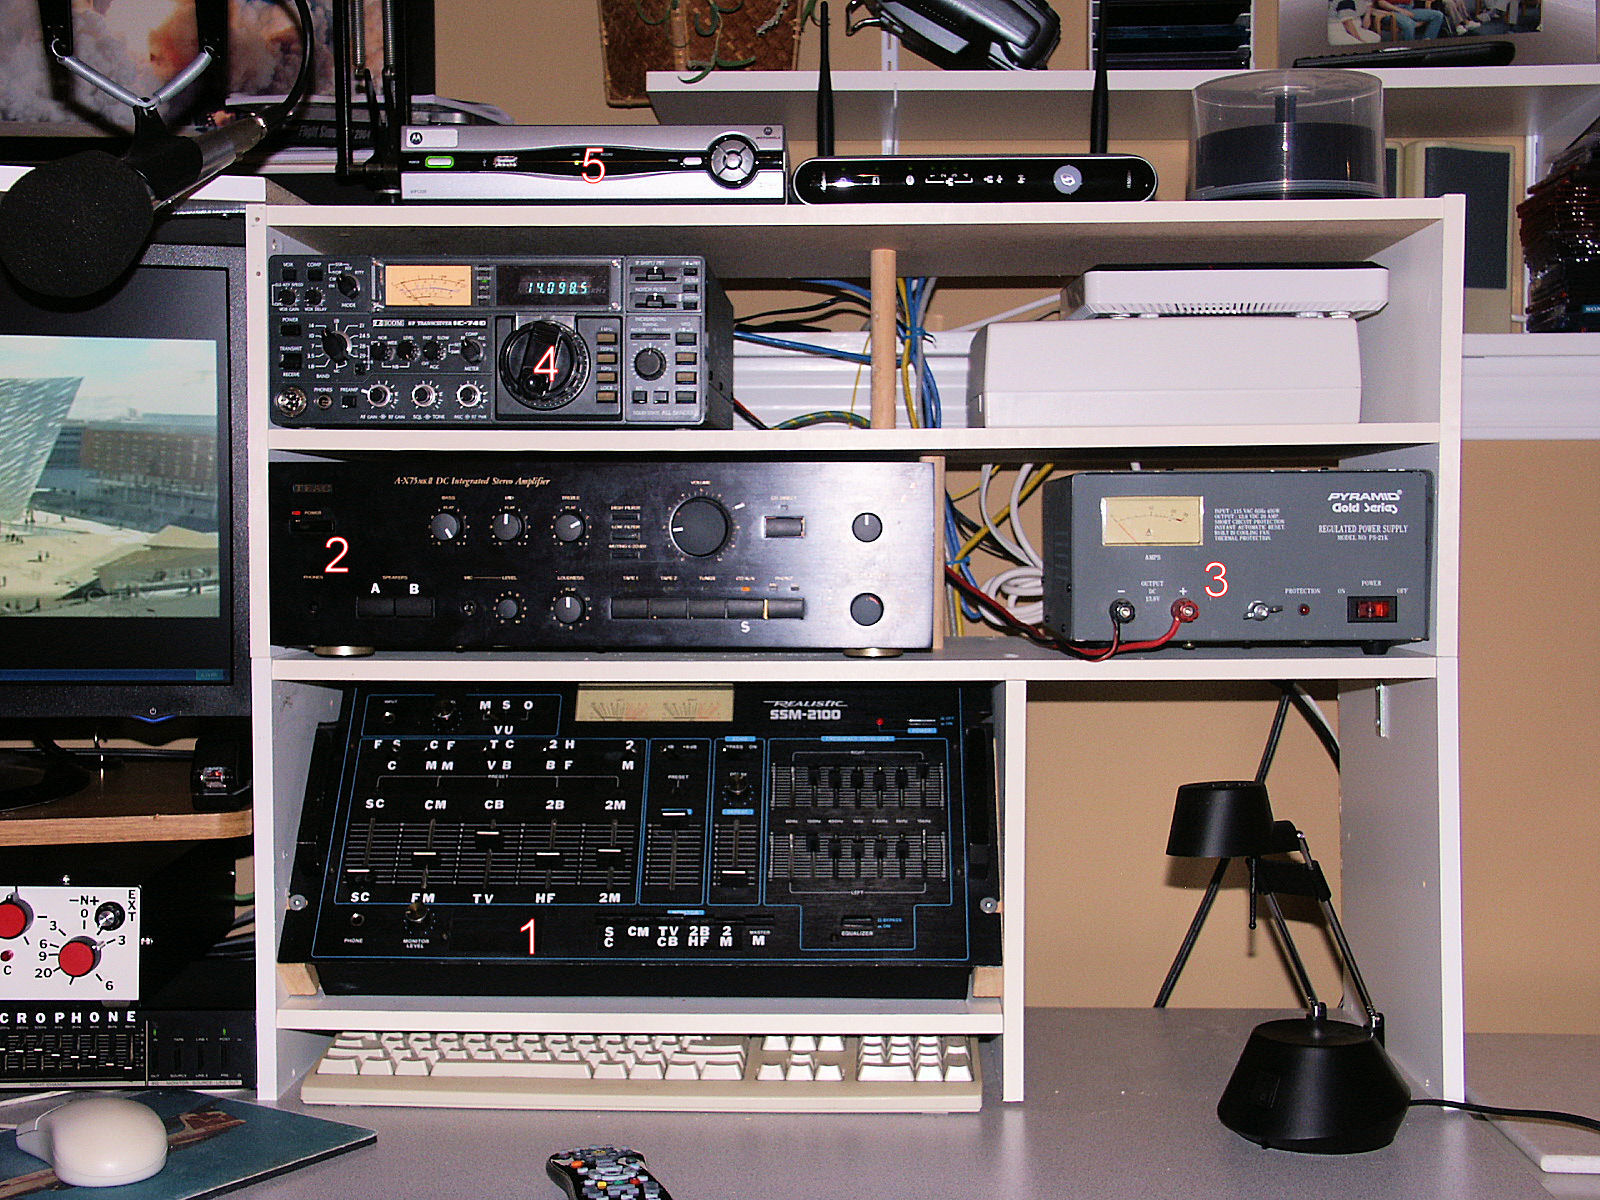 VE9BGC Equipment on right